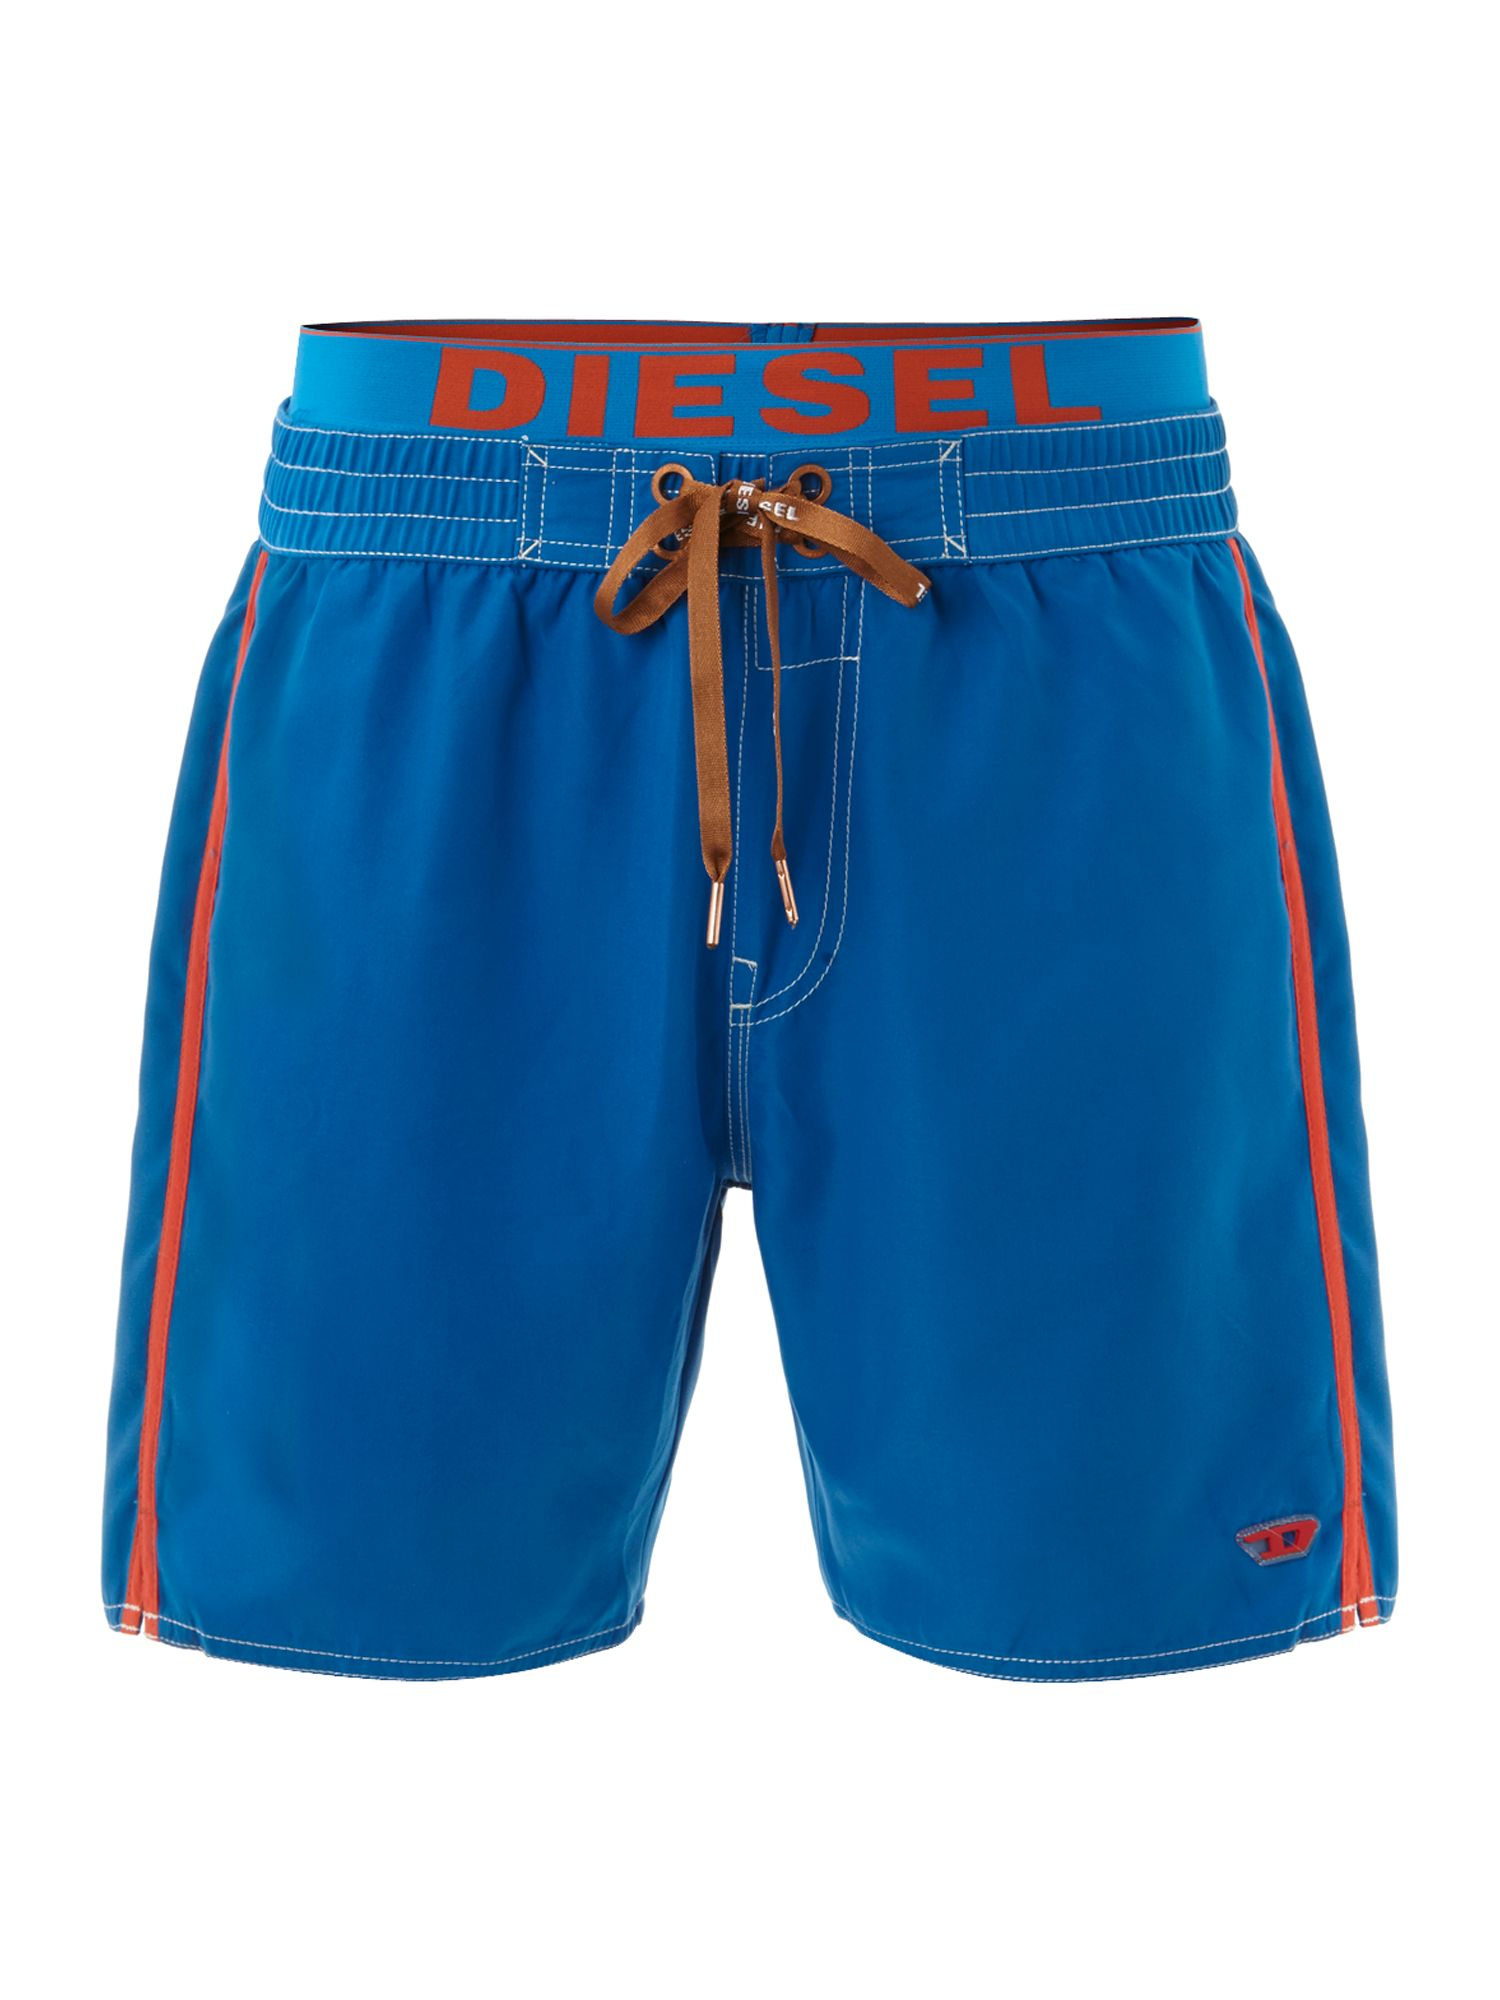 Meduim length dolphin swim short